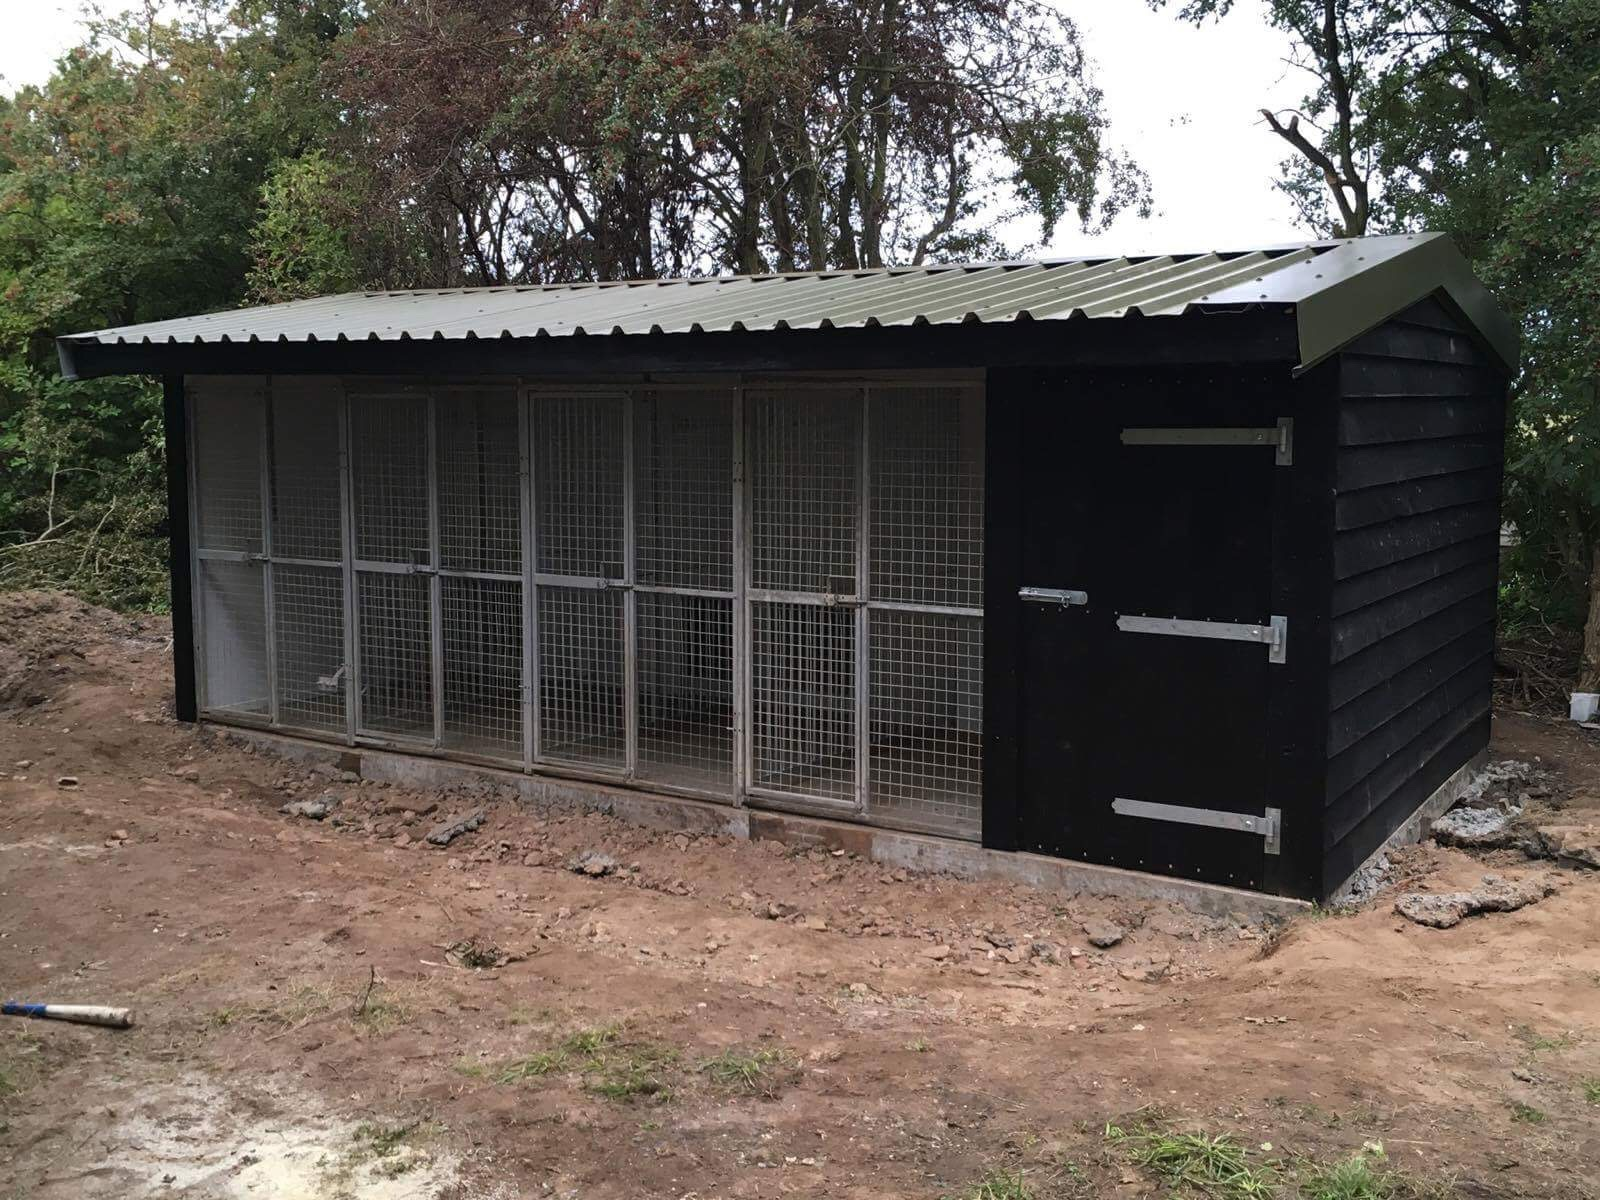 Block of dog kennels for a game-keeper's dogs